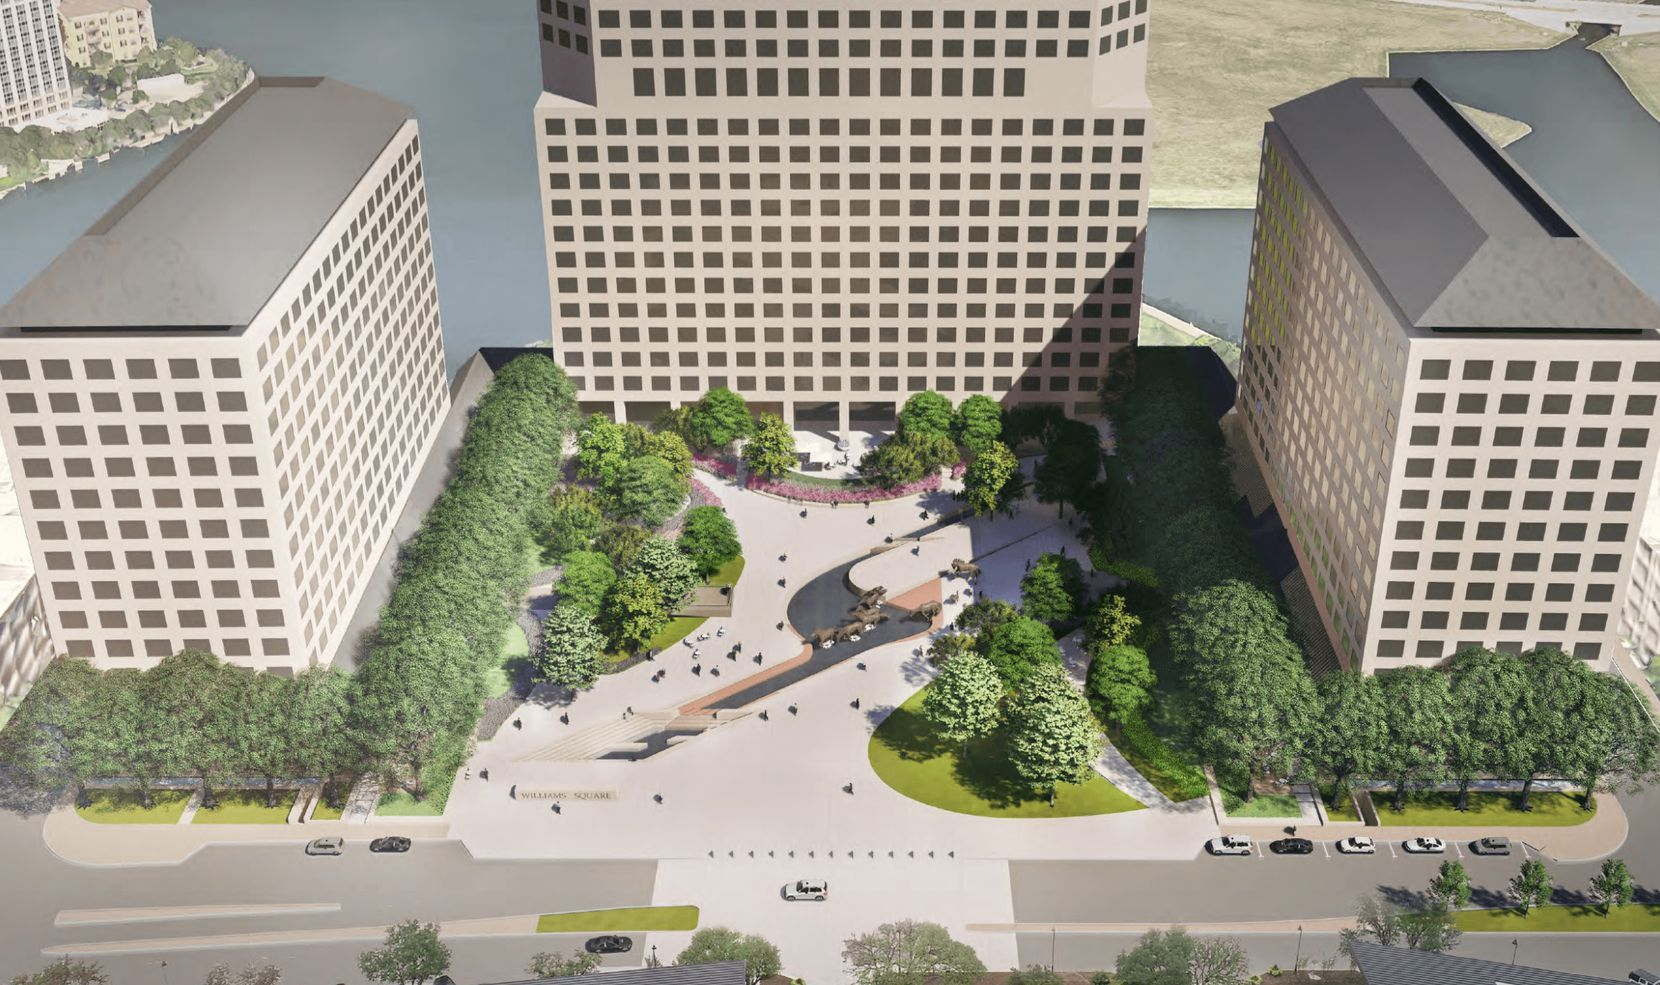 Areas of trees and landscaping will replace large sections of the granite plaza.